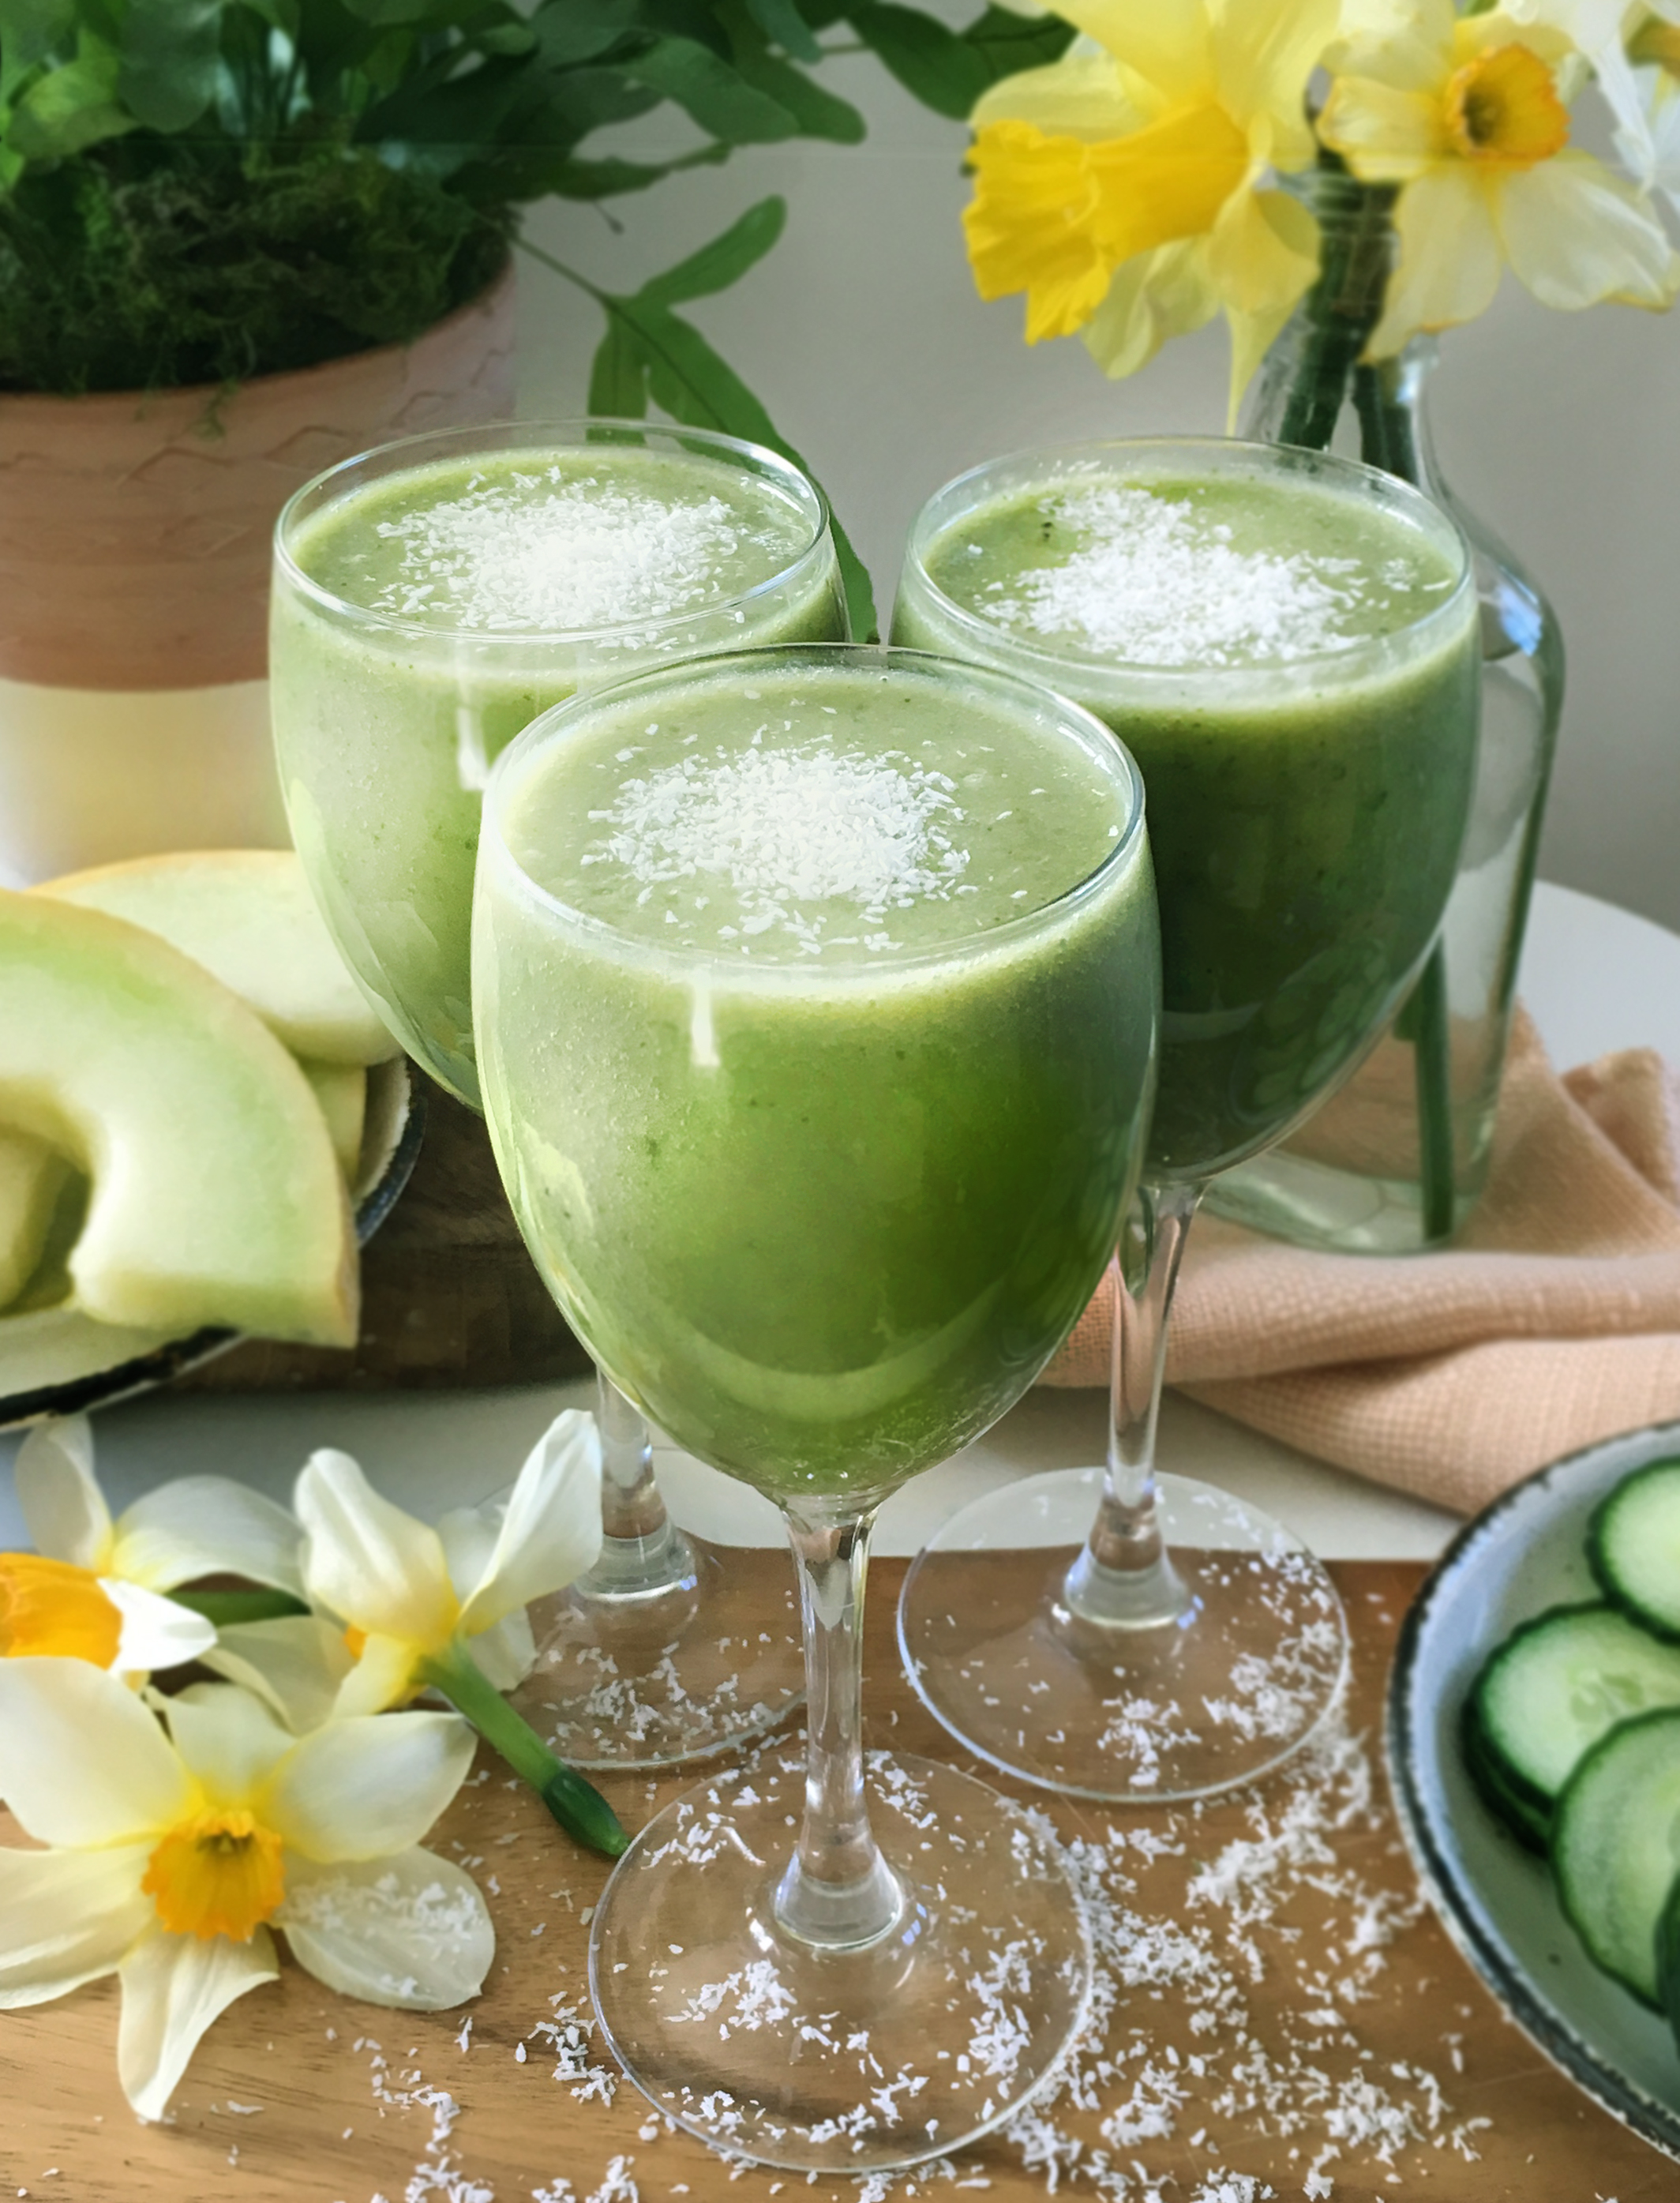 Green Refreshing Smoothie